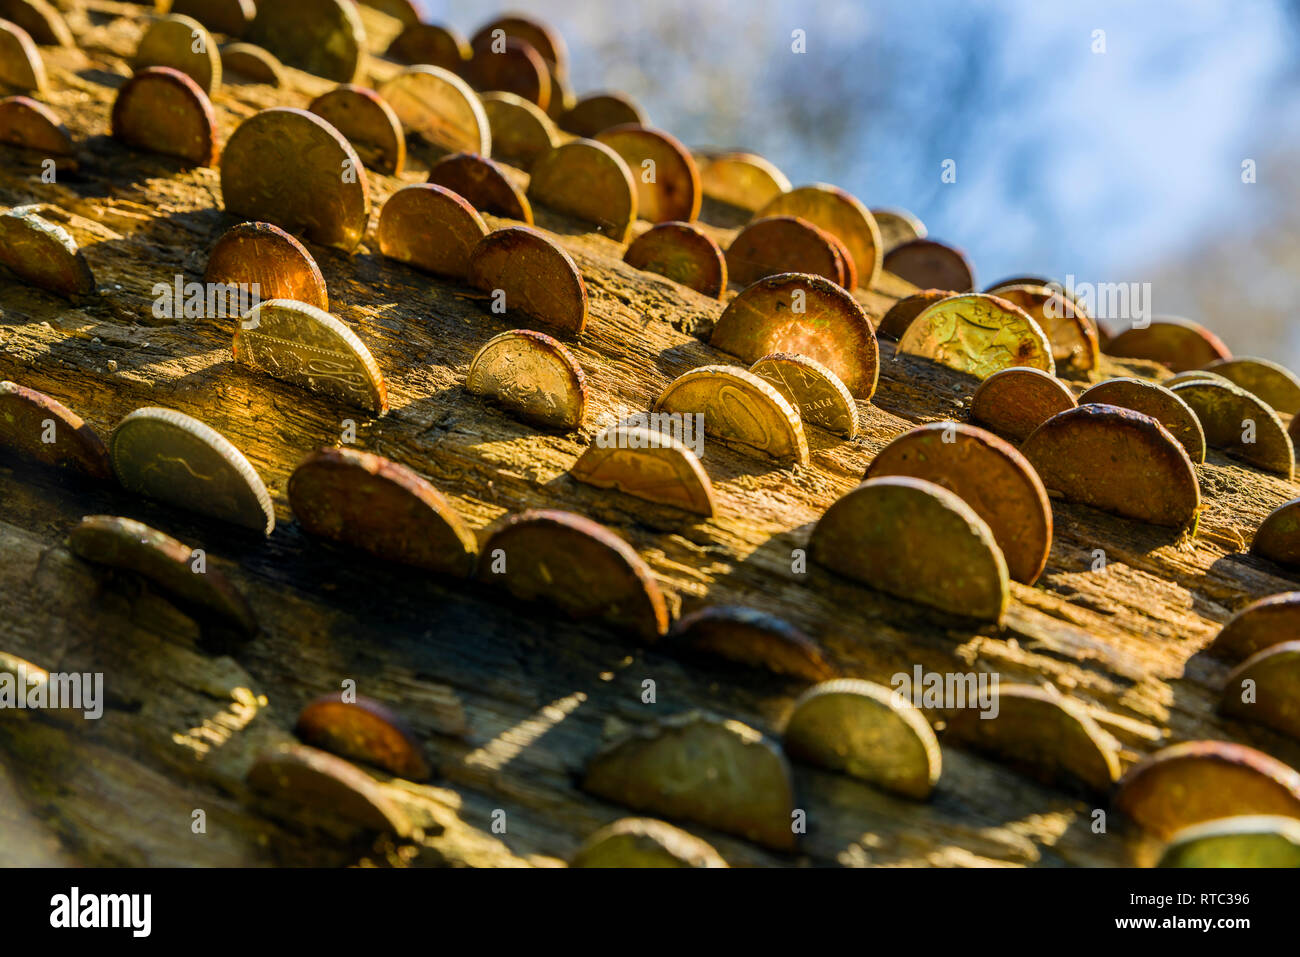 Hammering coins into a tree trunks is a centuires old tradition that for some is said to bring good fortune and or others is to cure ailments of vario - Stock Image